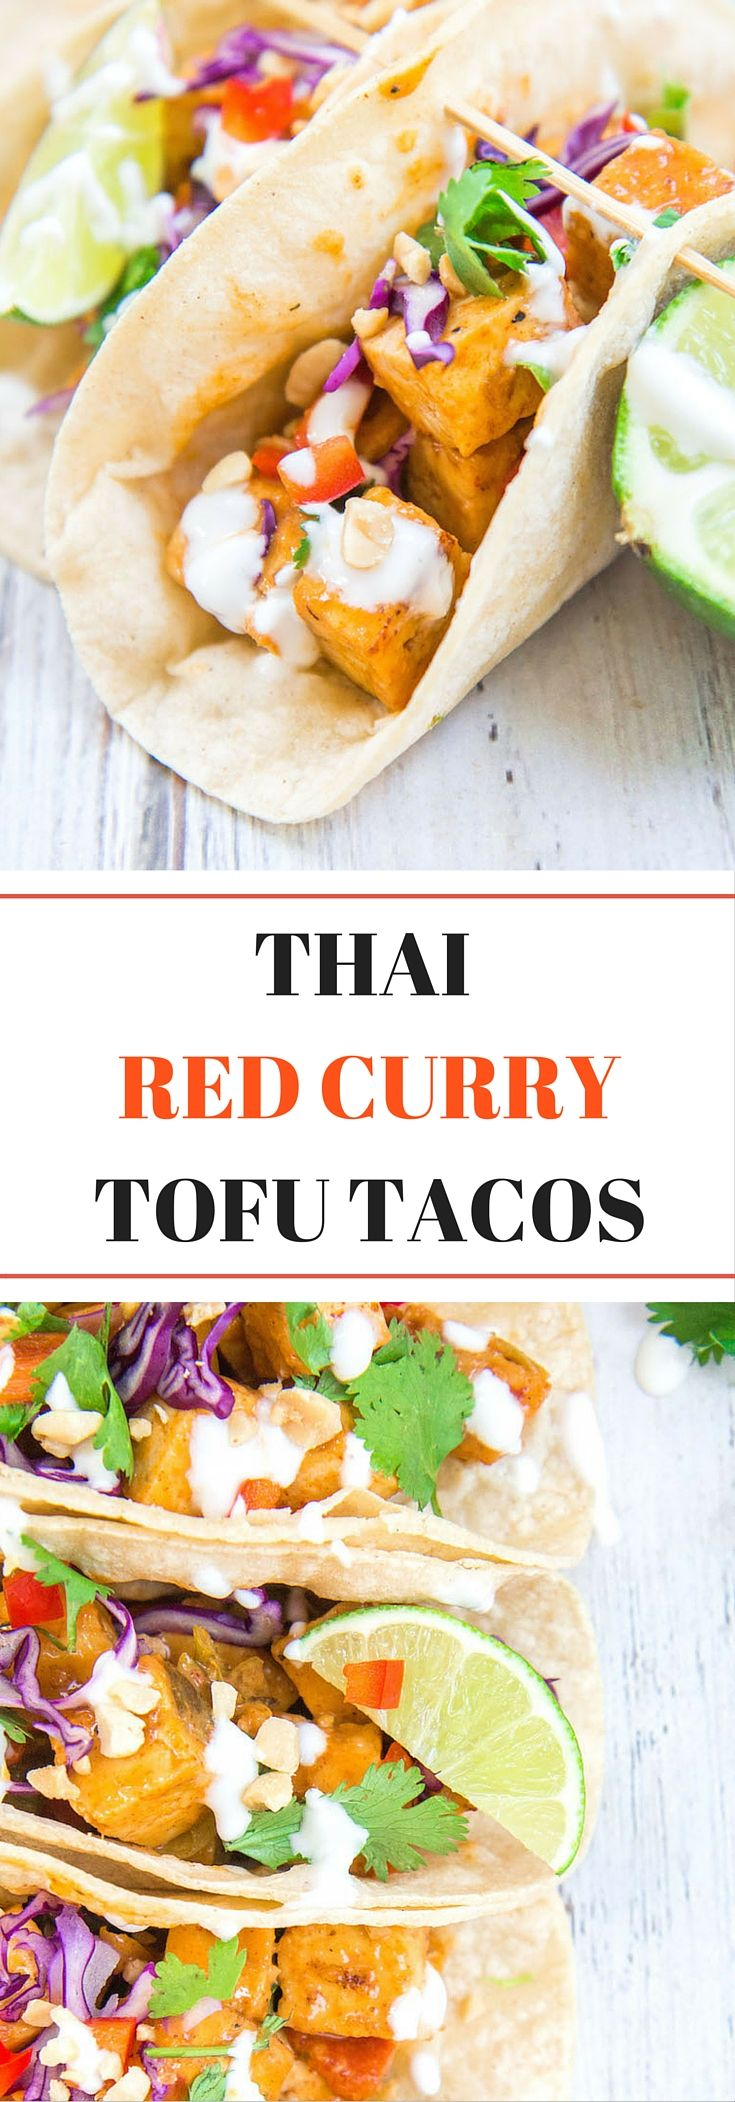 Theses Thai red curry tofu tacos are bursting with Thai flavours! They're the perfect dish for your next taco Tuesday! (V& GF)